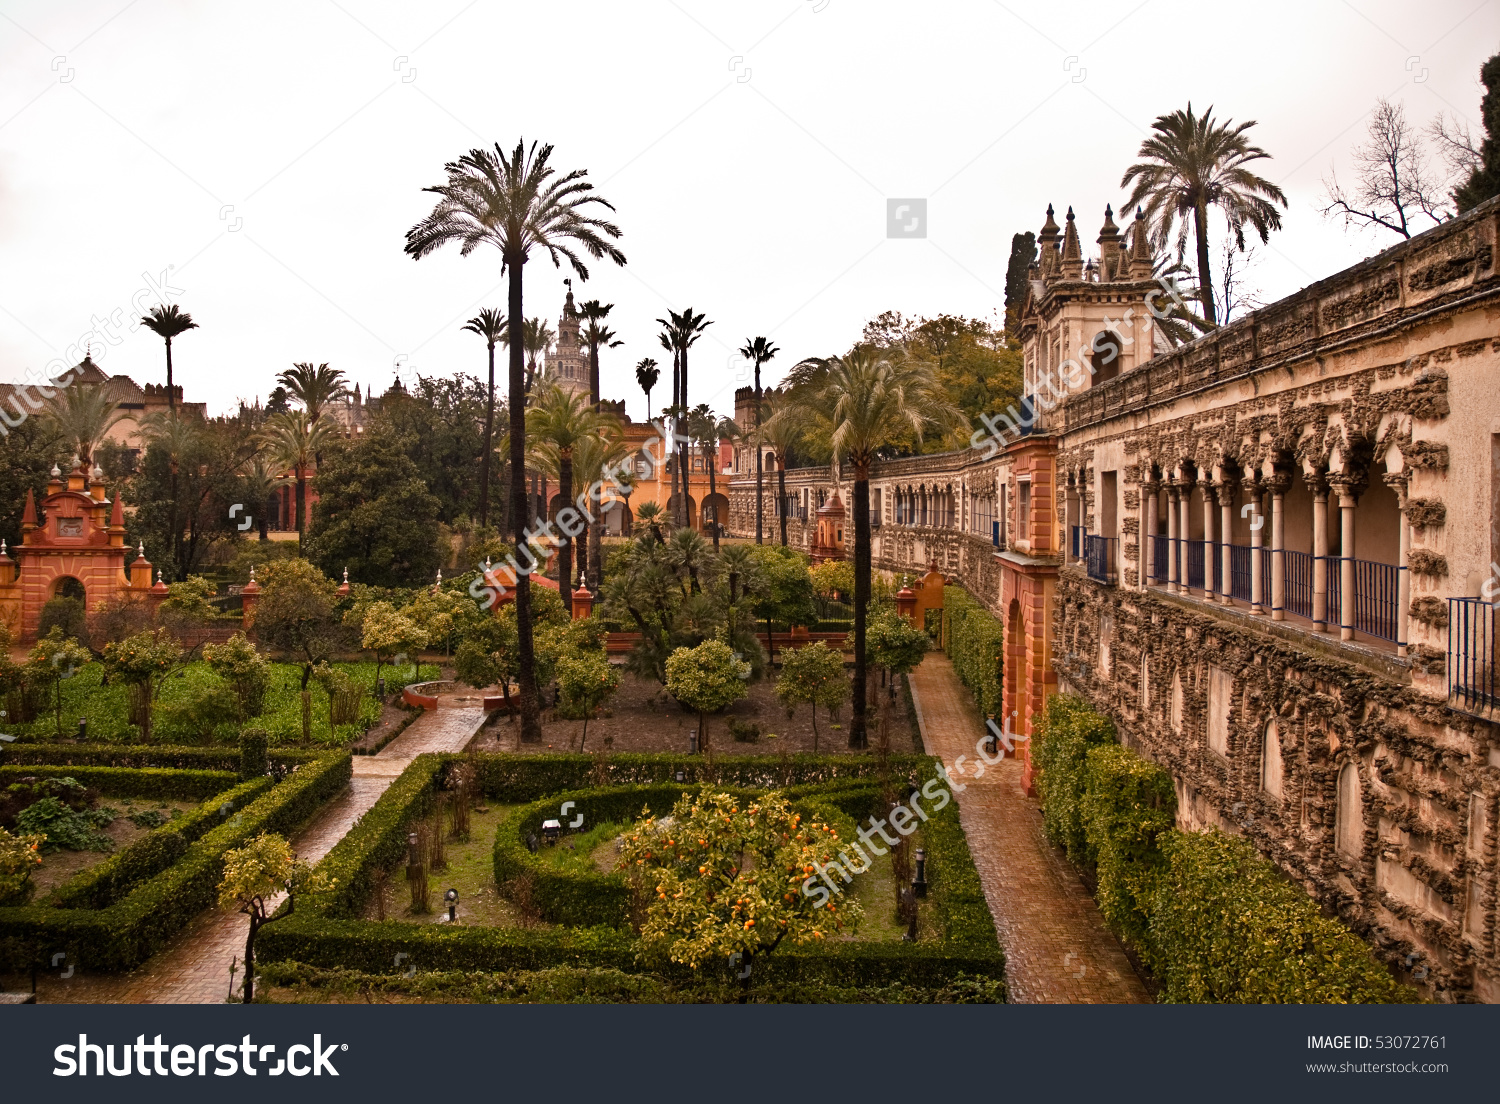 Gardens Alcazar Seville Spain Stock Photo 53072761.